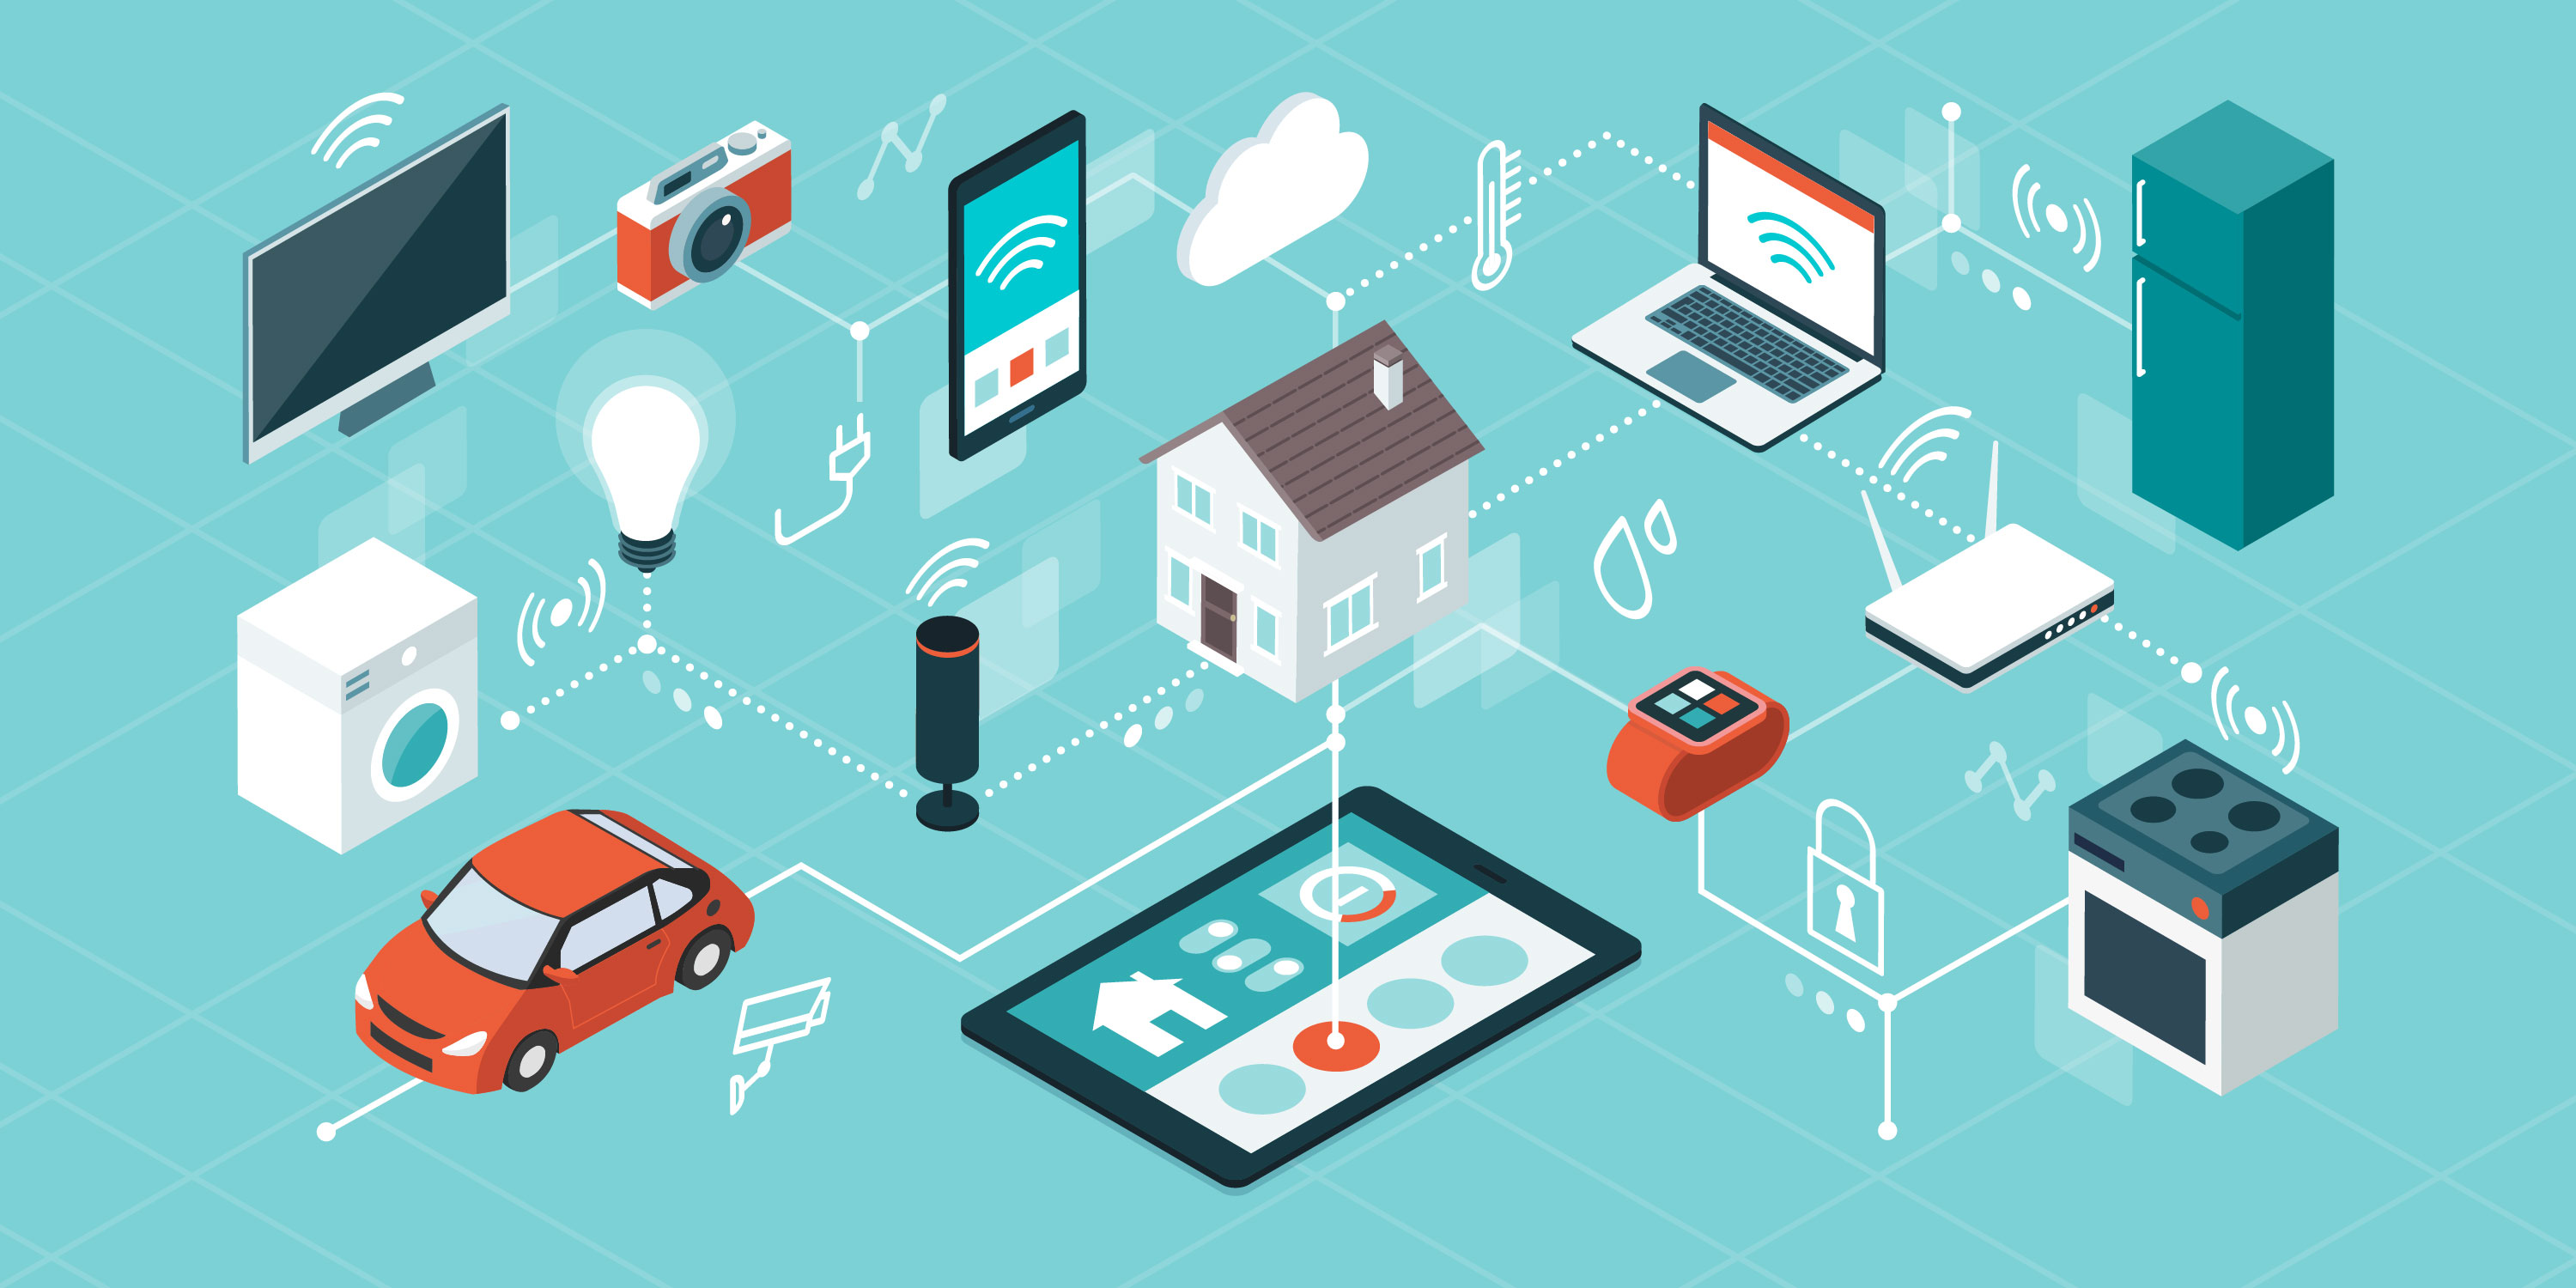 a smart home consists of compatible devices